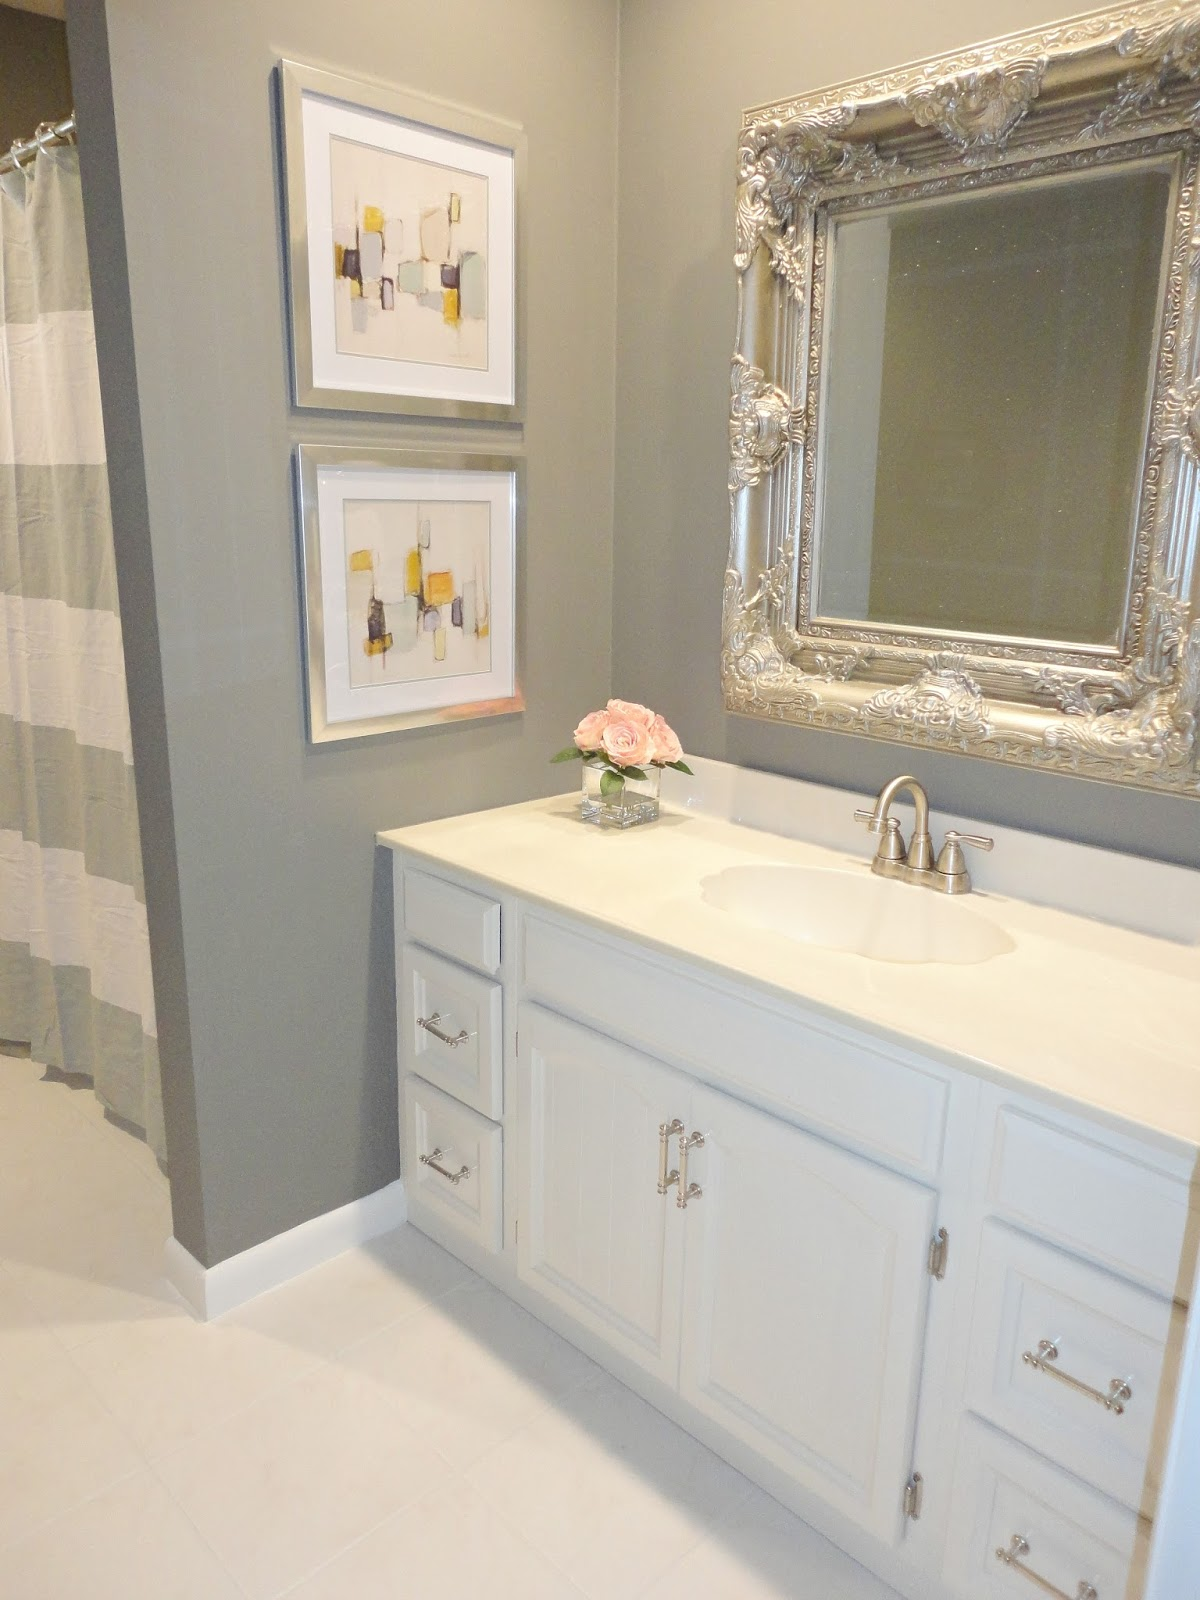 Small Bathroom Remodel Budget livelovediy: diy bathroom remodel on a budget